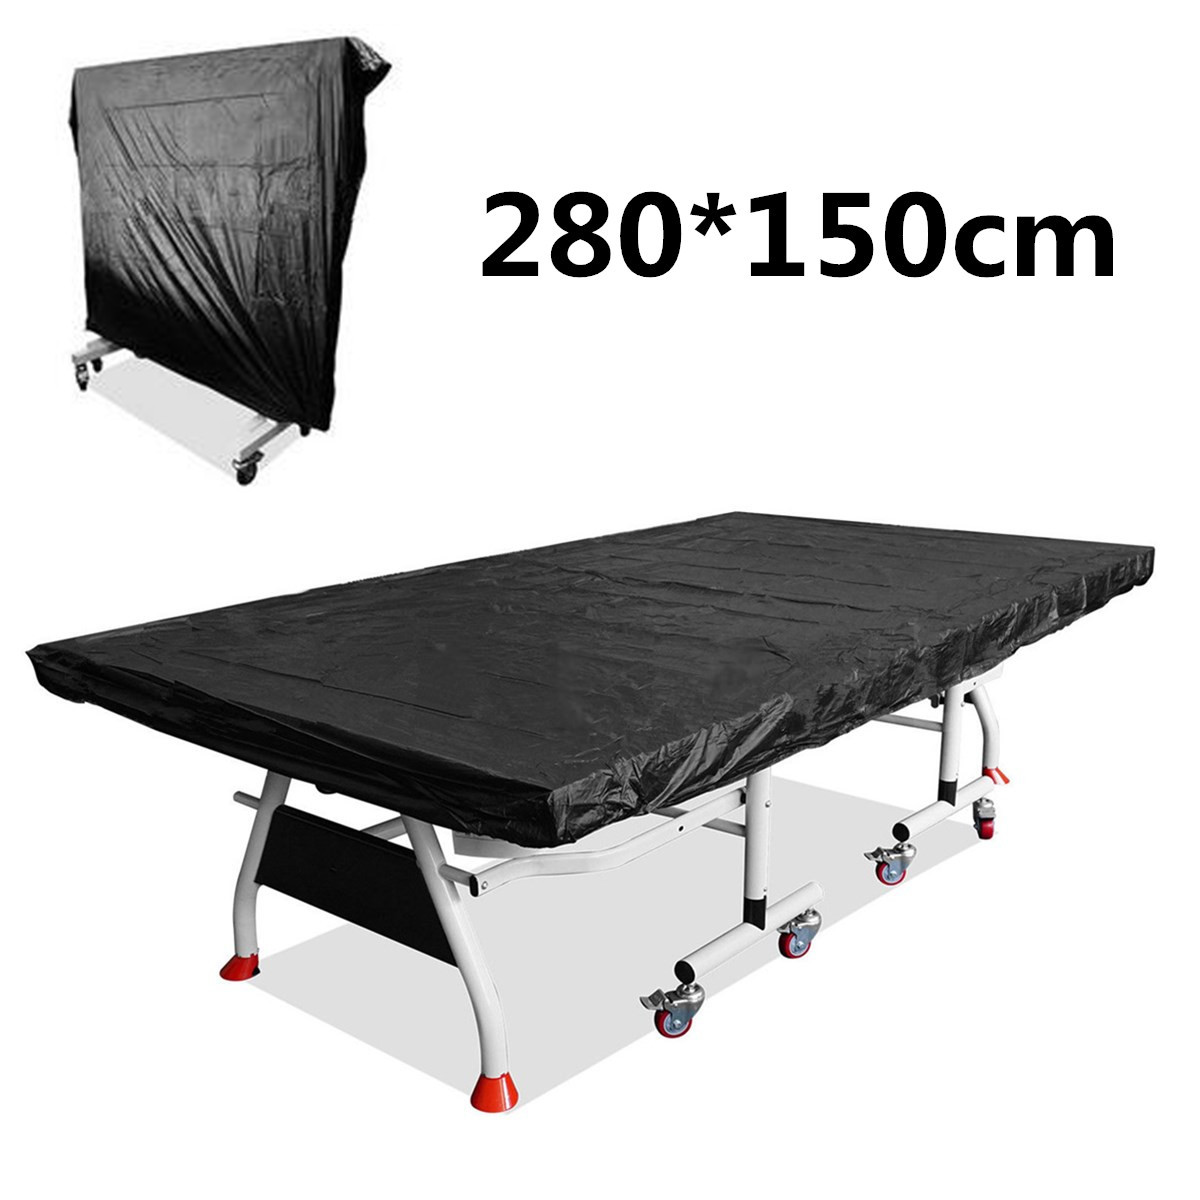 Pings Pong Table Storage Cover Table Tennis Sheet Indoor Outdoor Protection Table Tennis Sheet Waterproof Cover Black